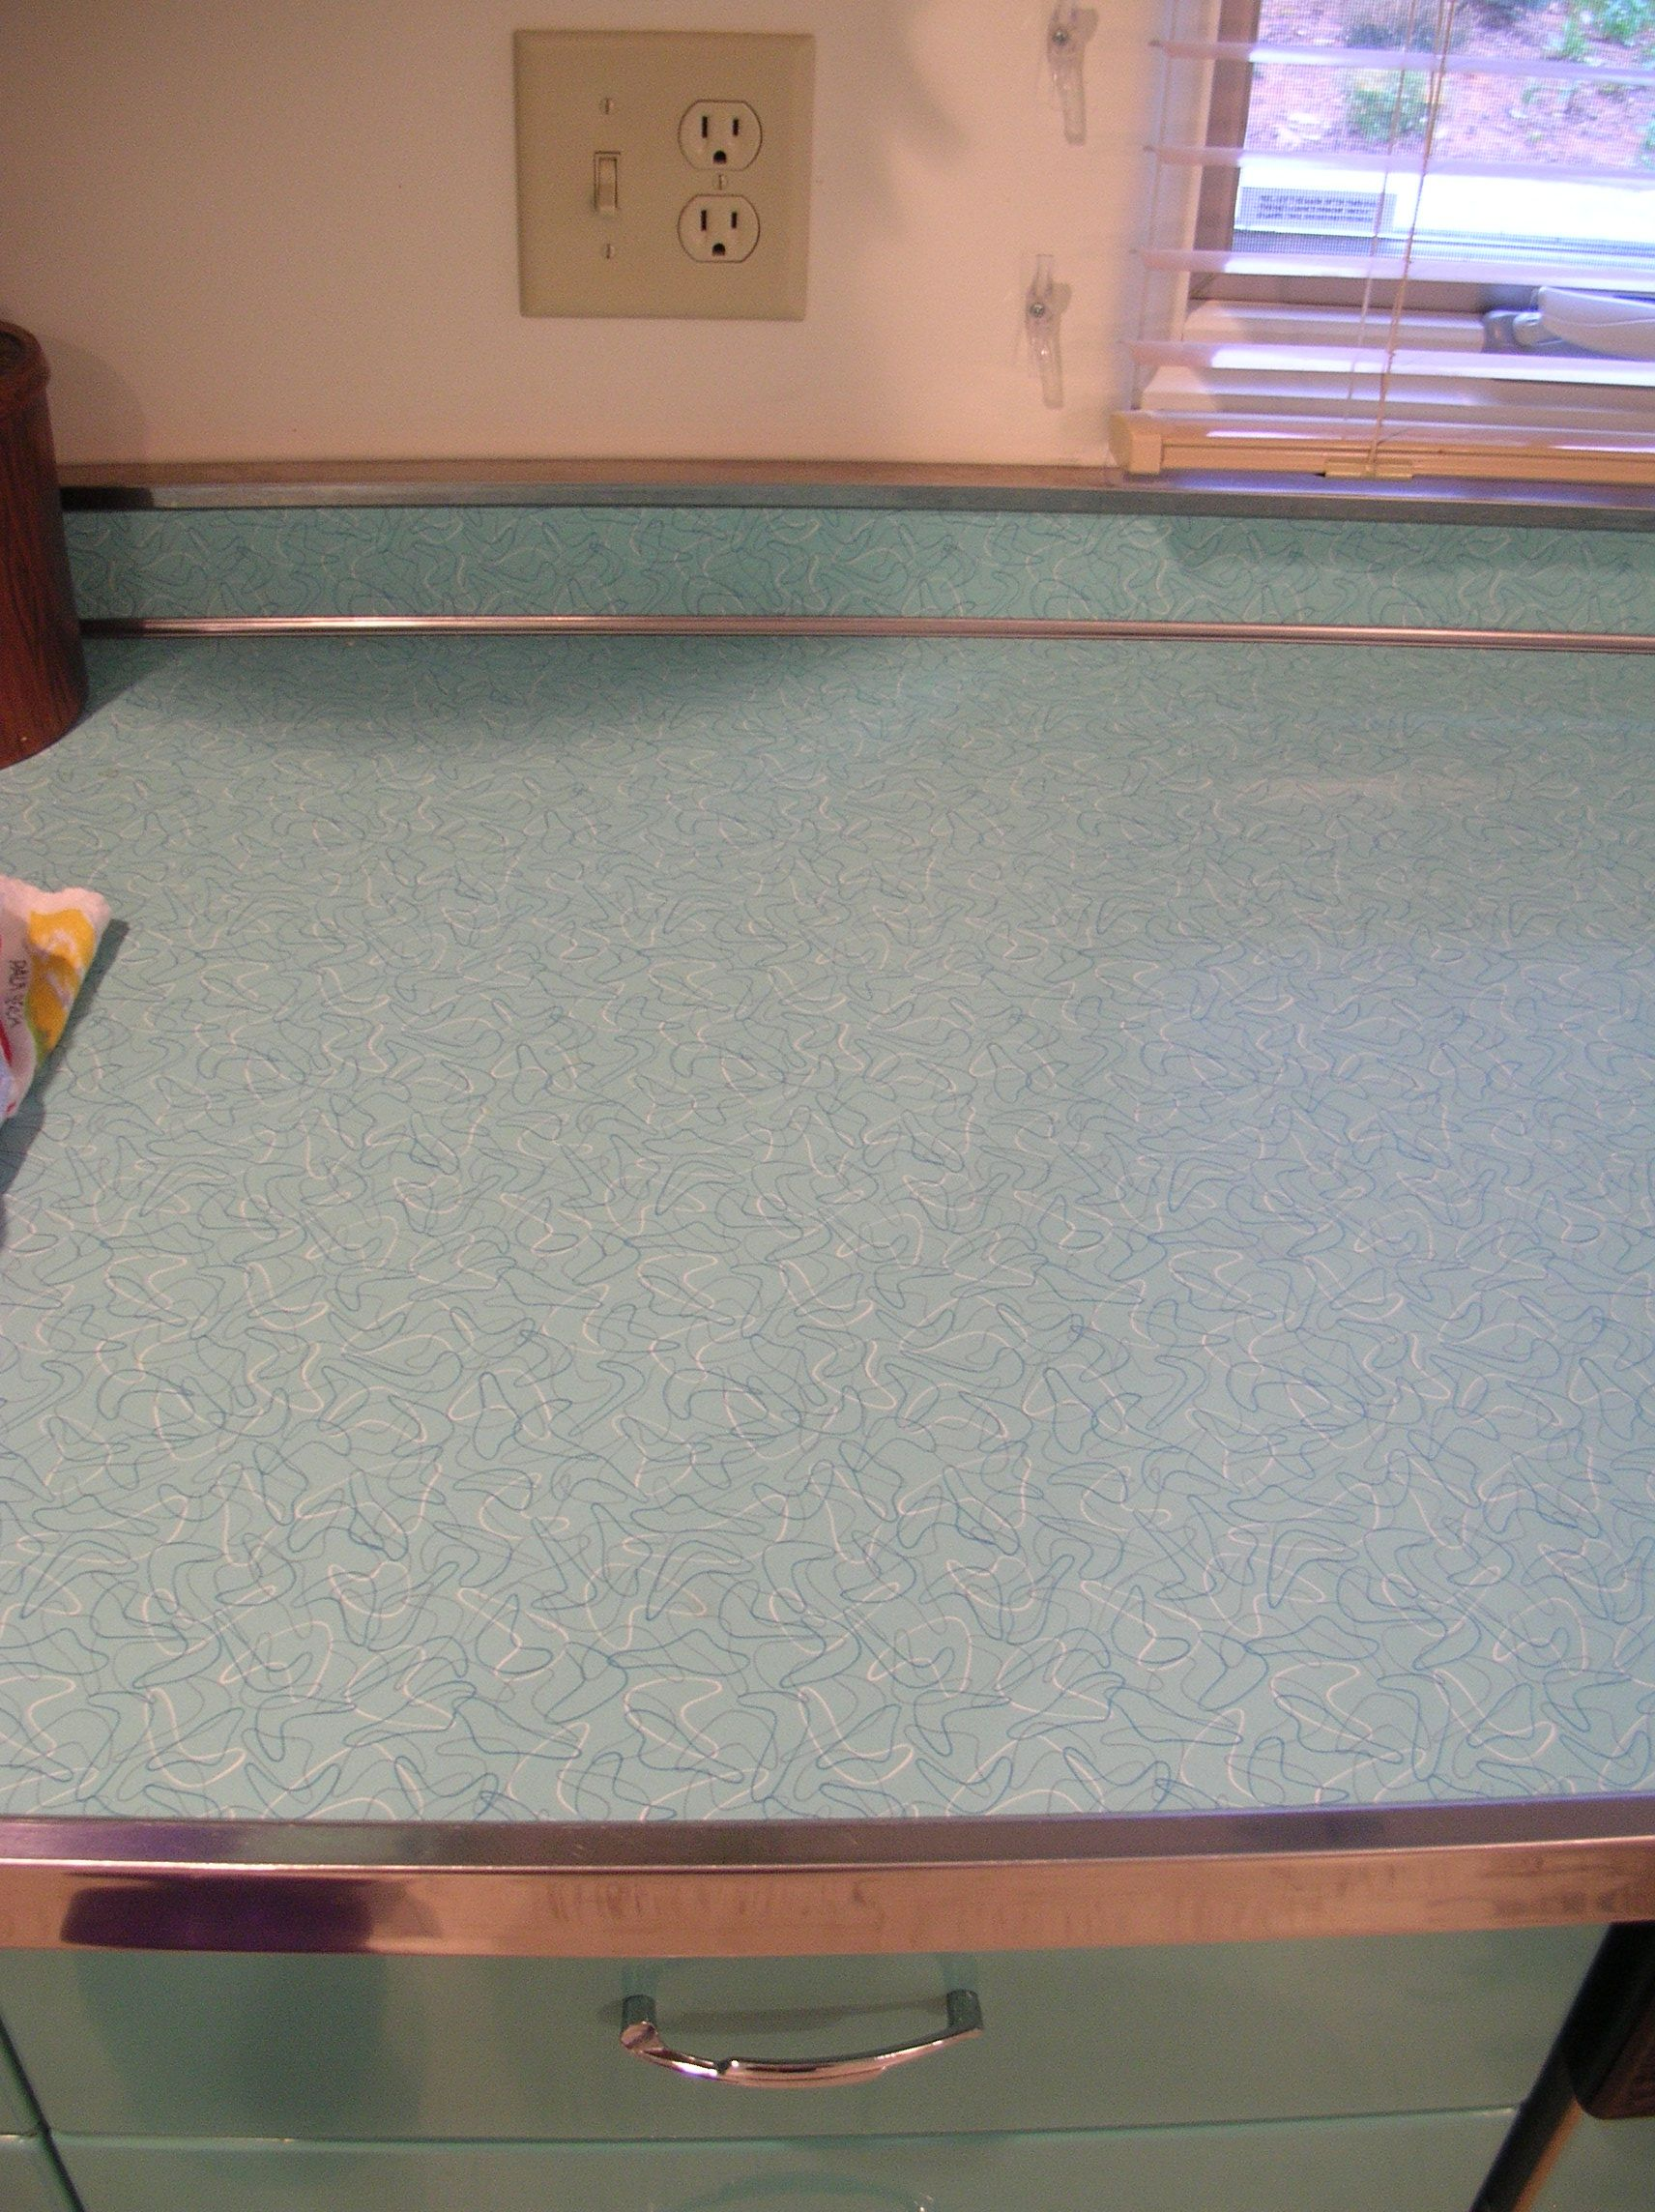 How To Cut A Formica Countertop Stainless Steel Metal Edging For Your Laminate Countertop